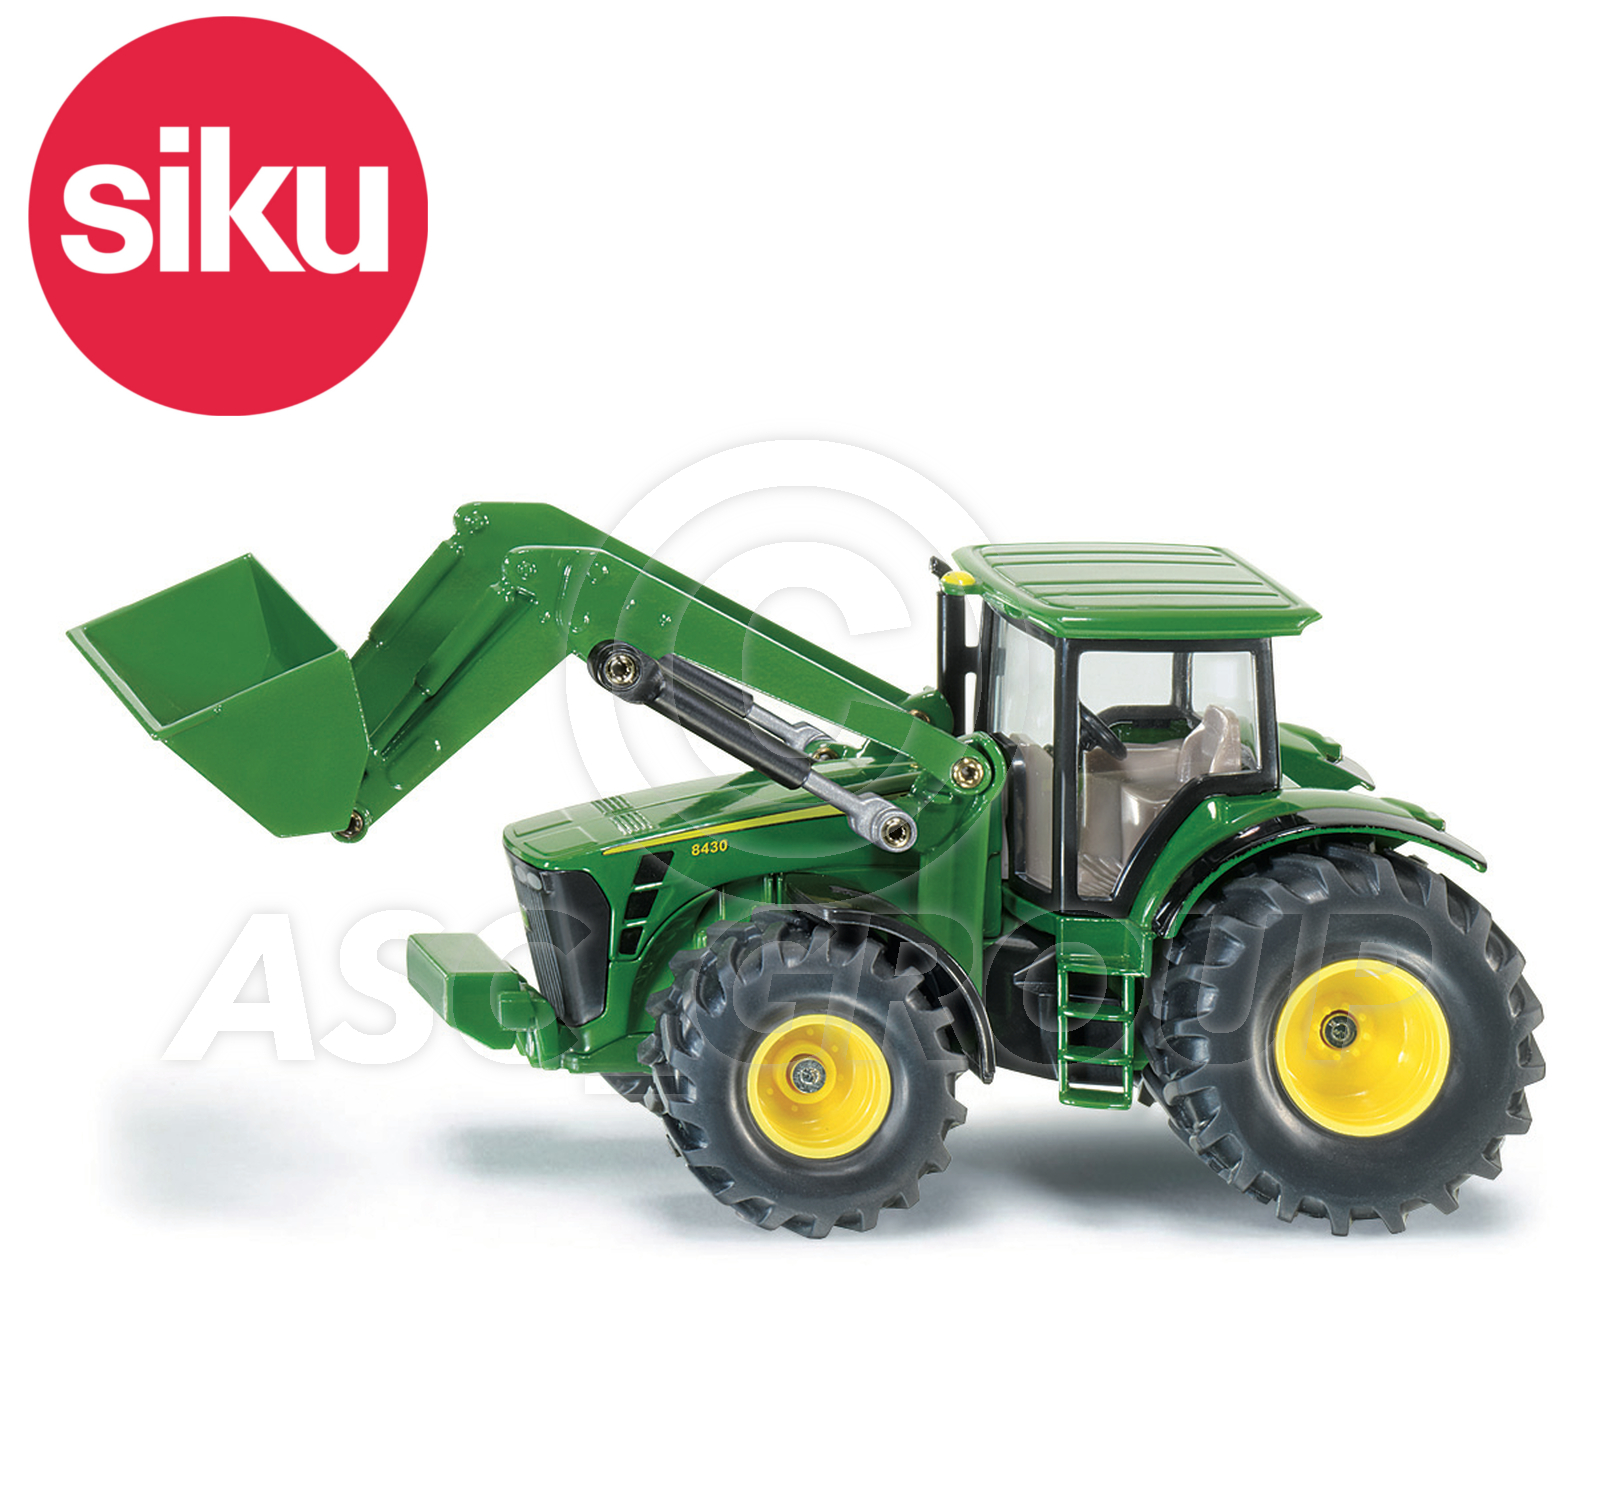 Siku no  scale john deere tractor with front